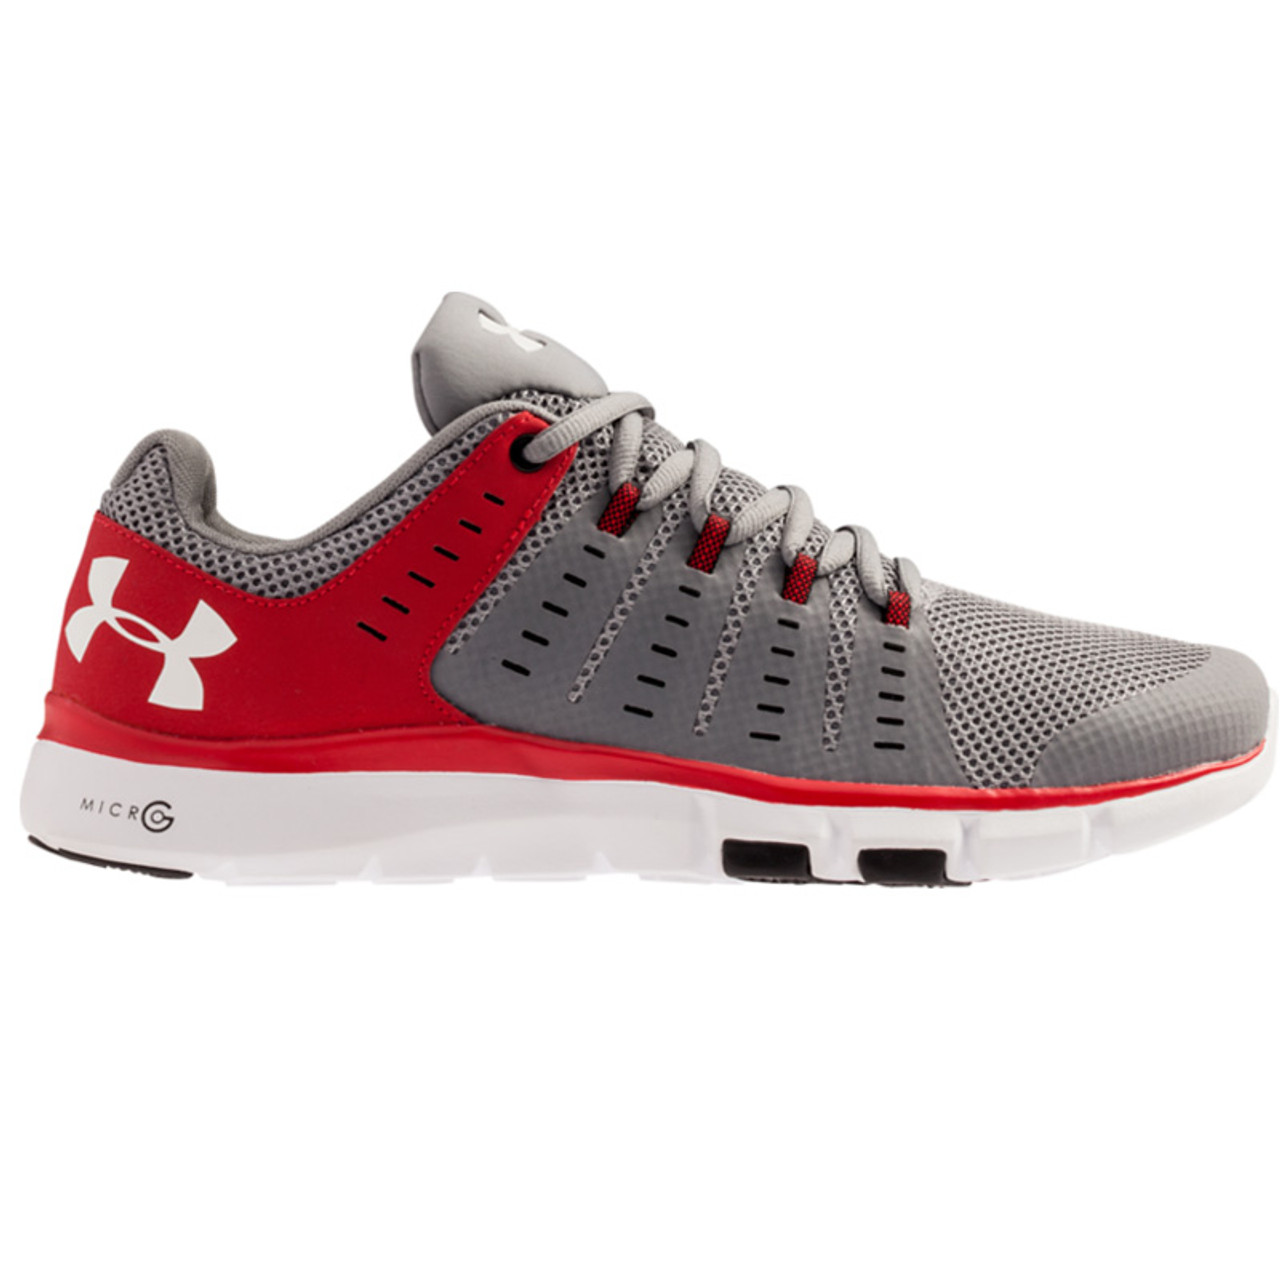 Under Armour Micro G Limitless 2 Footware Multi Colour